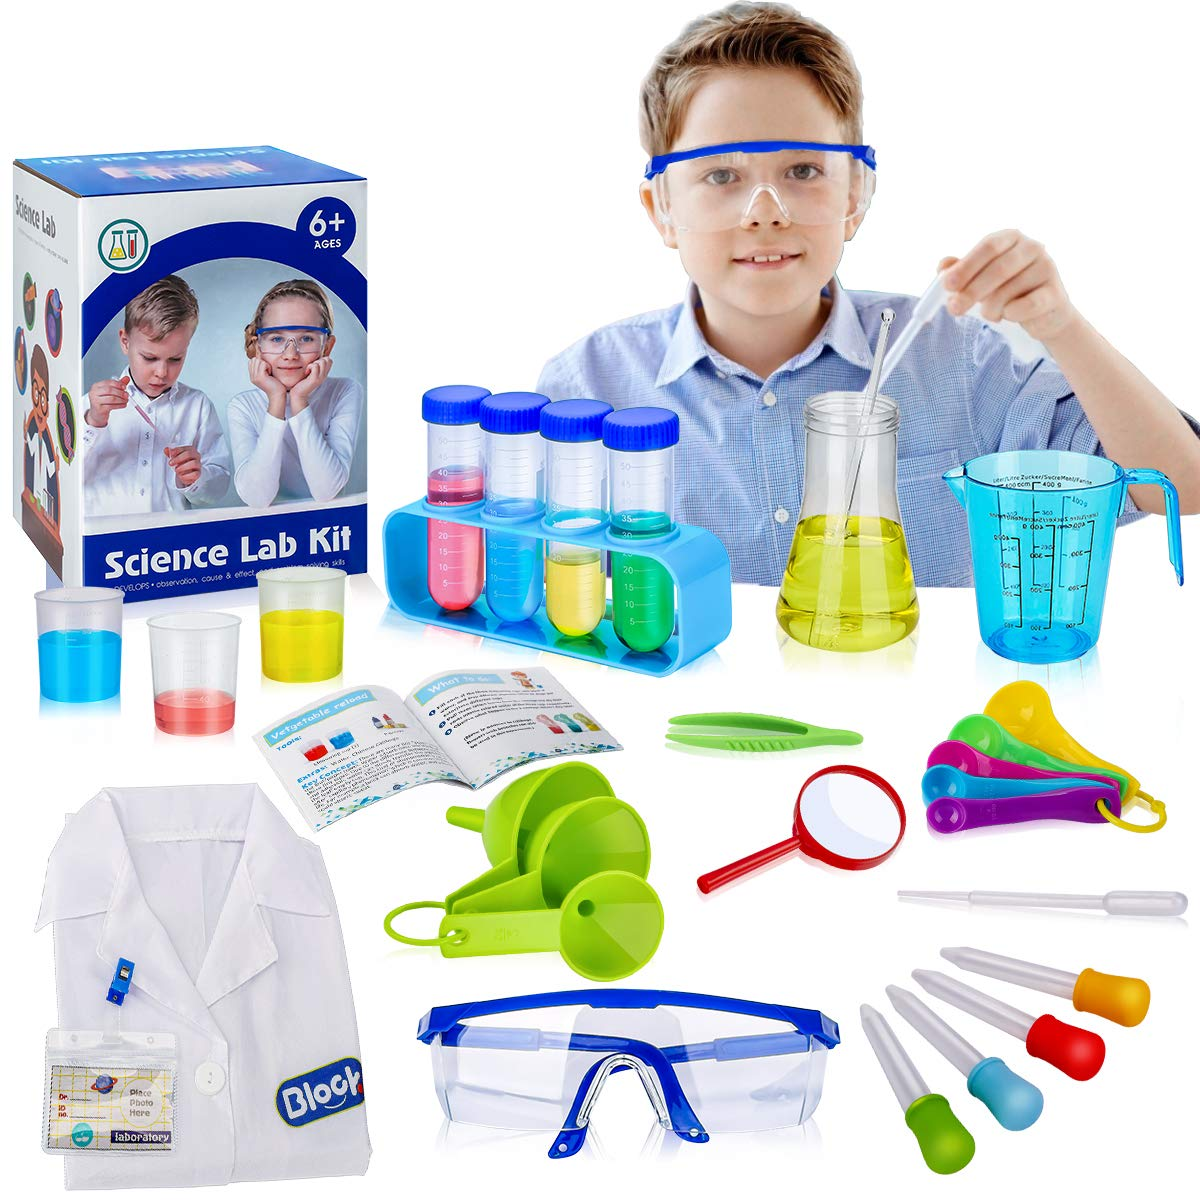 X TOYZ Kids Science Experiments Kit STEM Toys with 29-Piece Lab Tools for Scientist Costume Dress Up Including Lab Coat, Funnels, Testing Tubes,Measuring Spoon, Safety Glasses and More